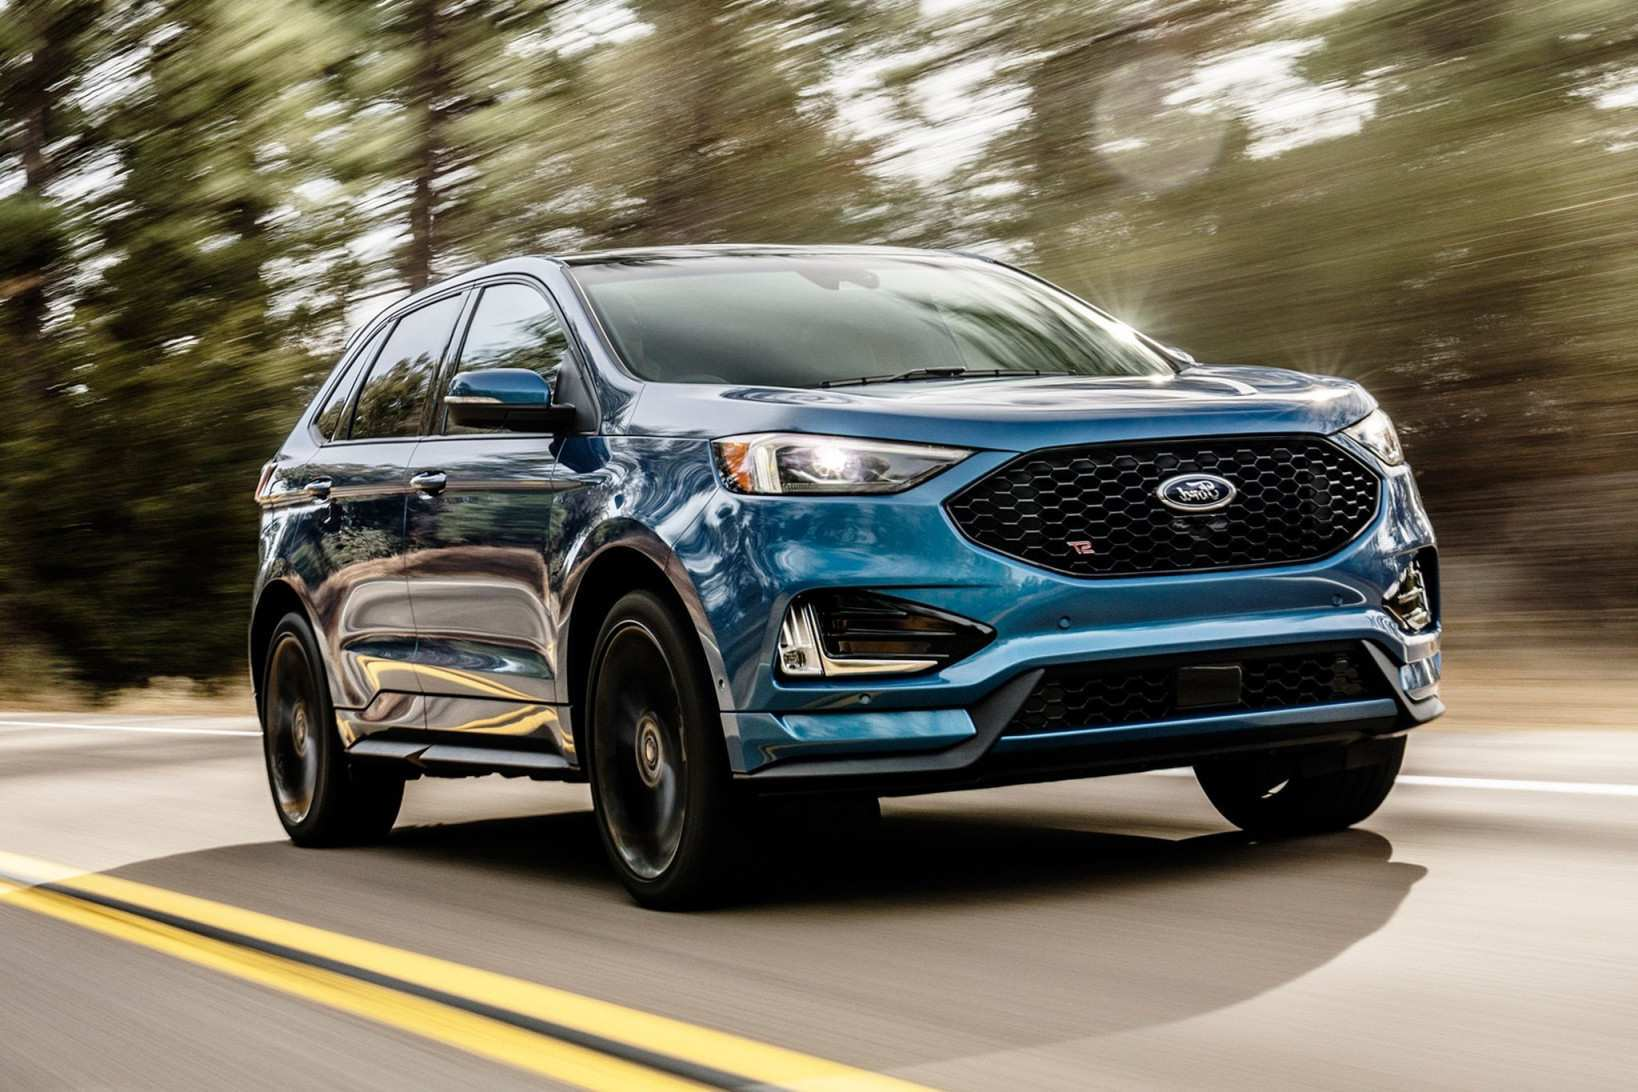 38 Gallery of 2019 Ford Production Schedule Spesification for 2019 Ford Production Schedule